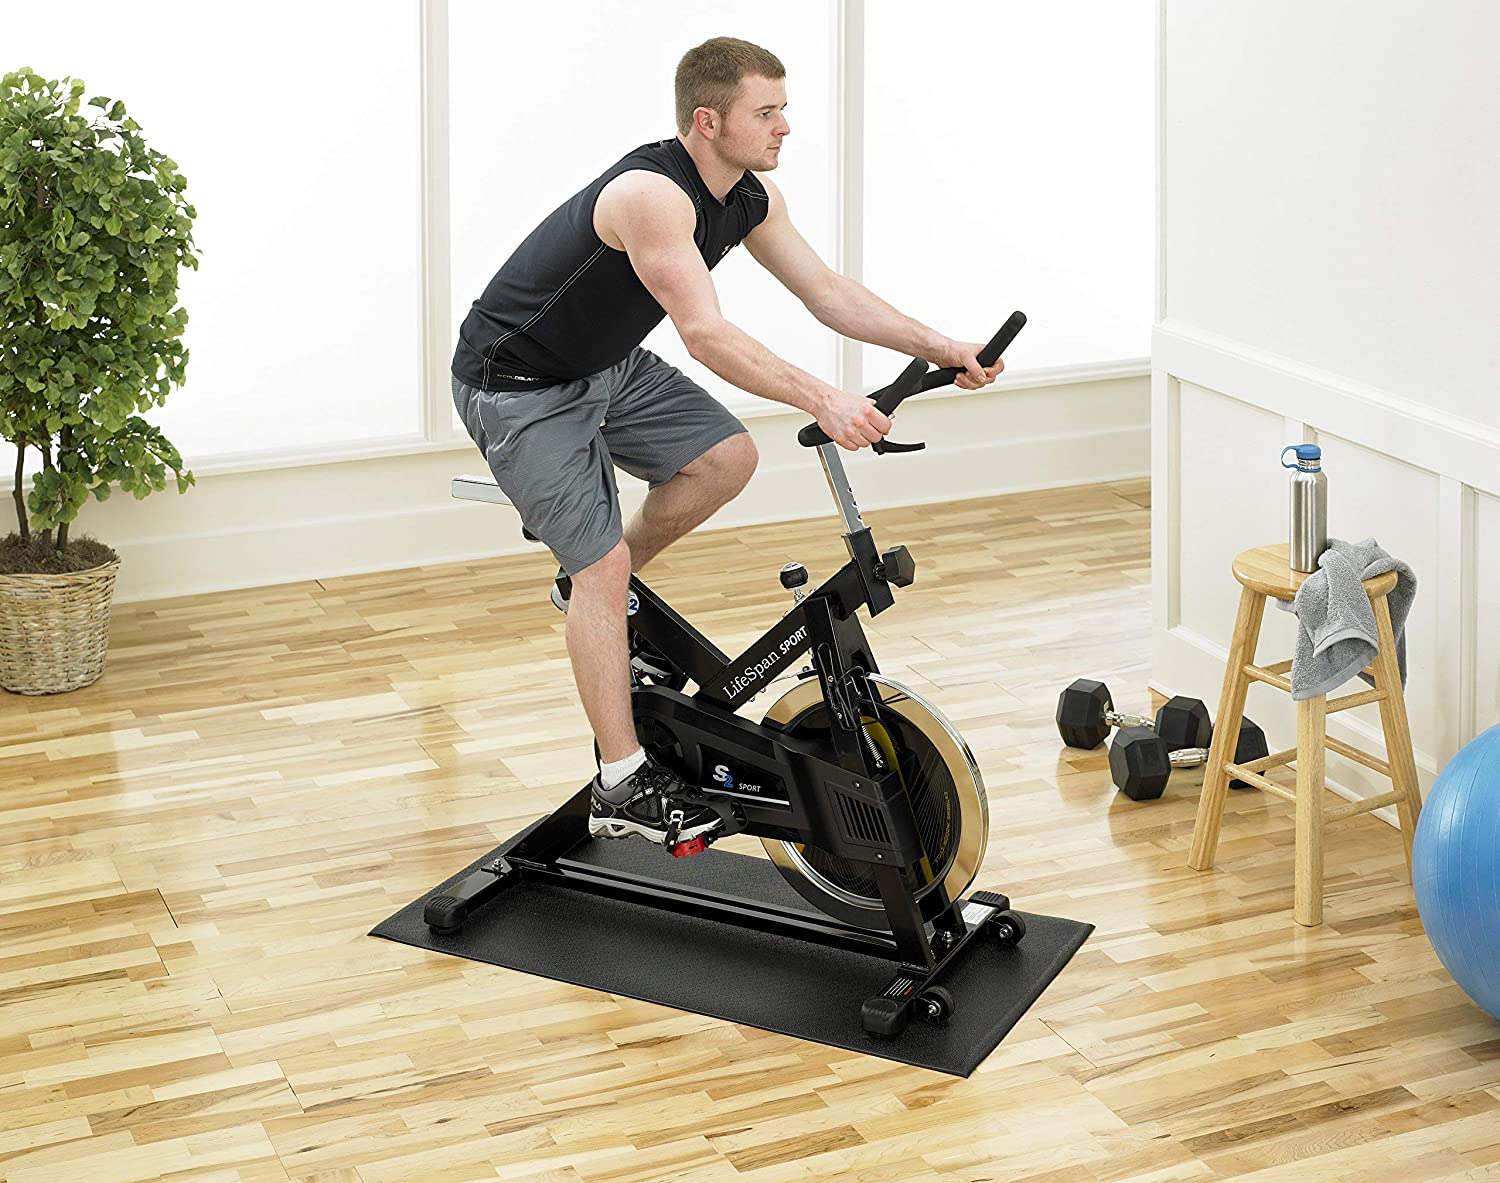 Supermats Heavy Duty Equipment Mat 20GS Made in U.S.A. for Indoor Cycles Exercise Upright Bikes and Steppers (2 Feet x 3 Feet 10 In) (24-Inch x 46-Inch) (60.96 cm x 116.84 cm) , Black: Sports & Outdoors